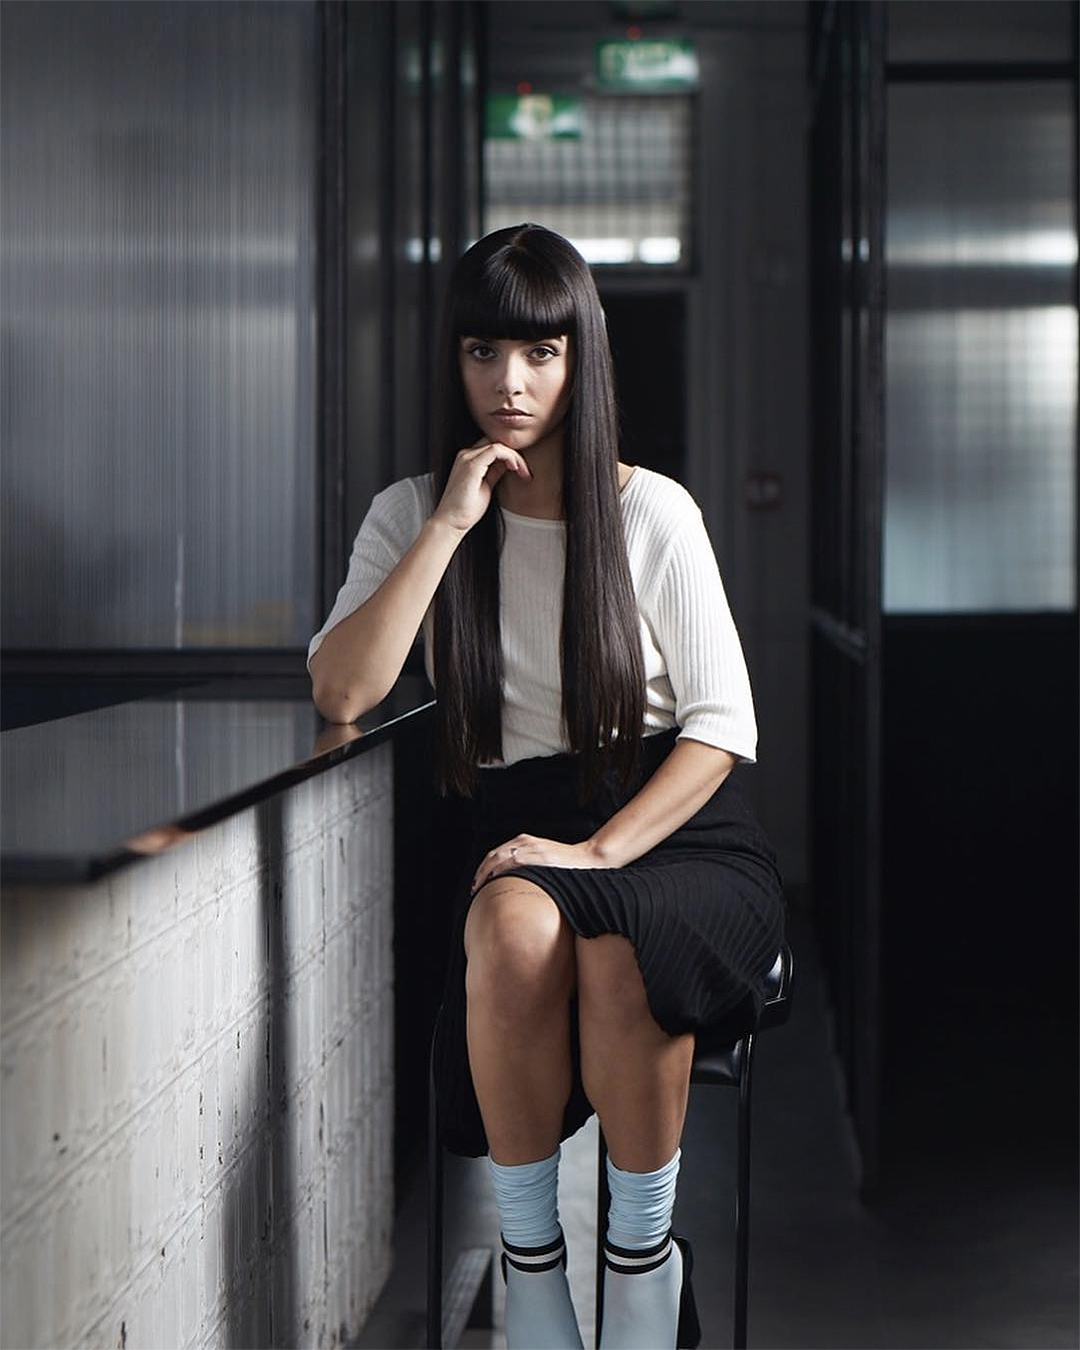 A woman sits on a stool with impeccably combed long dark hair.